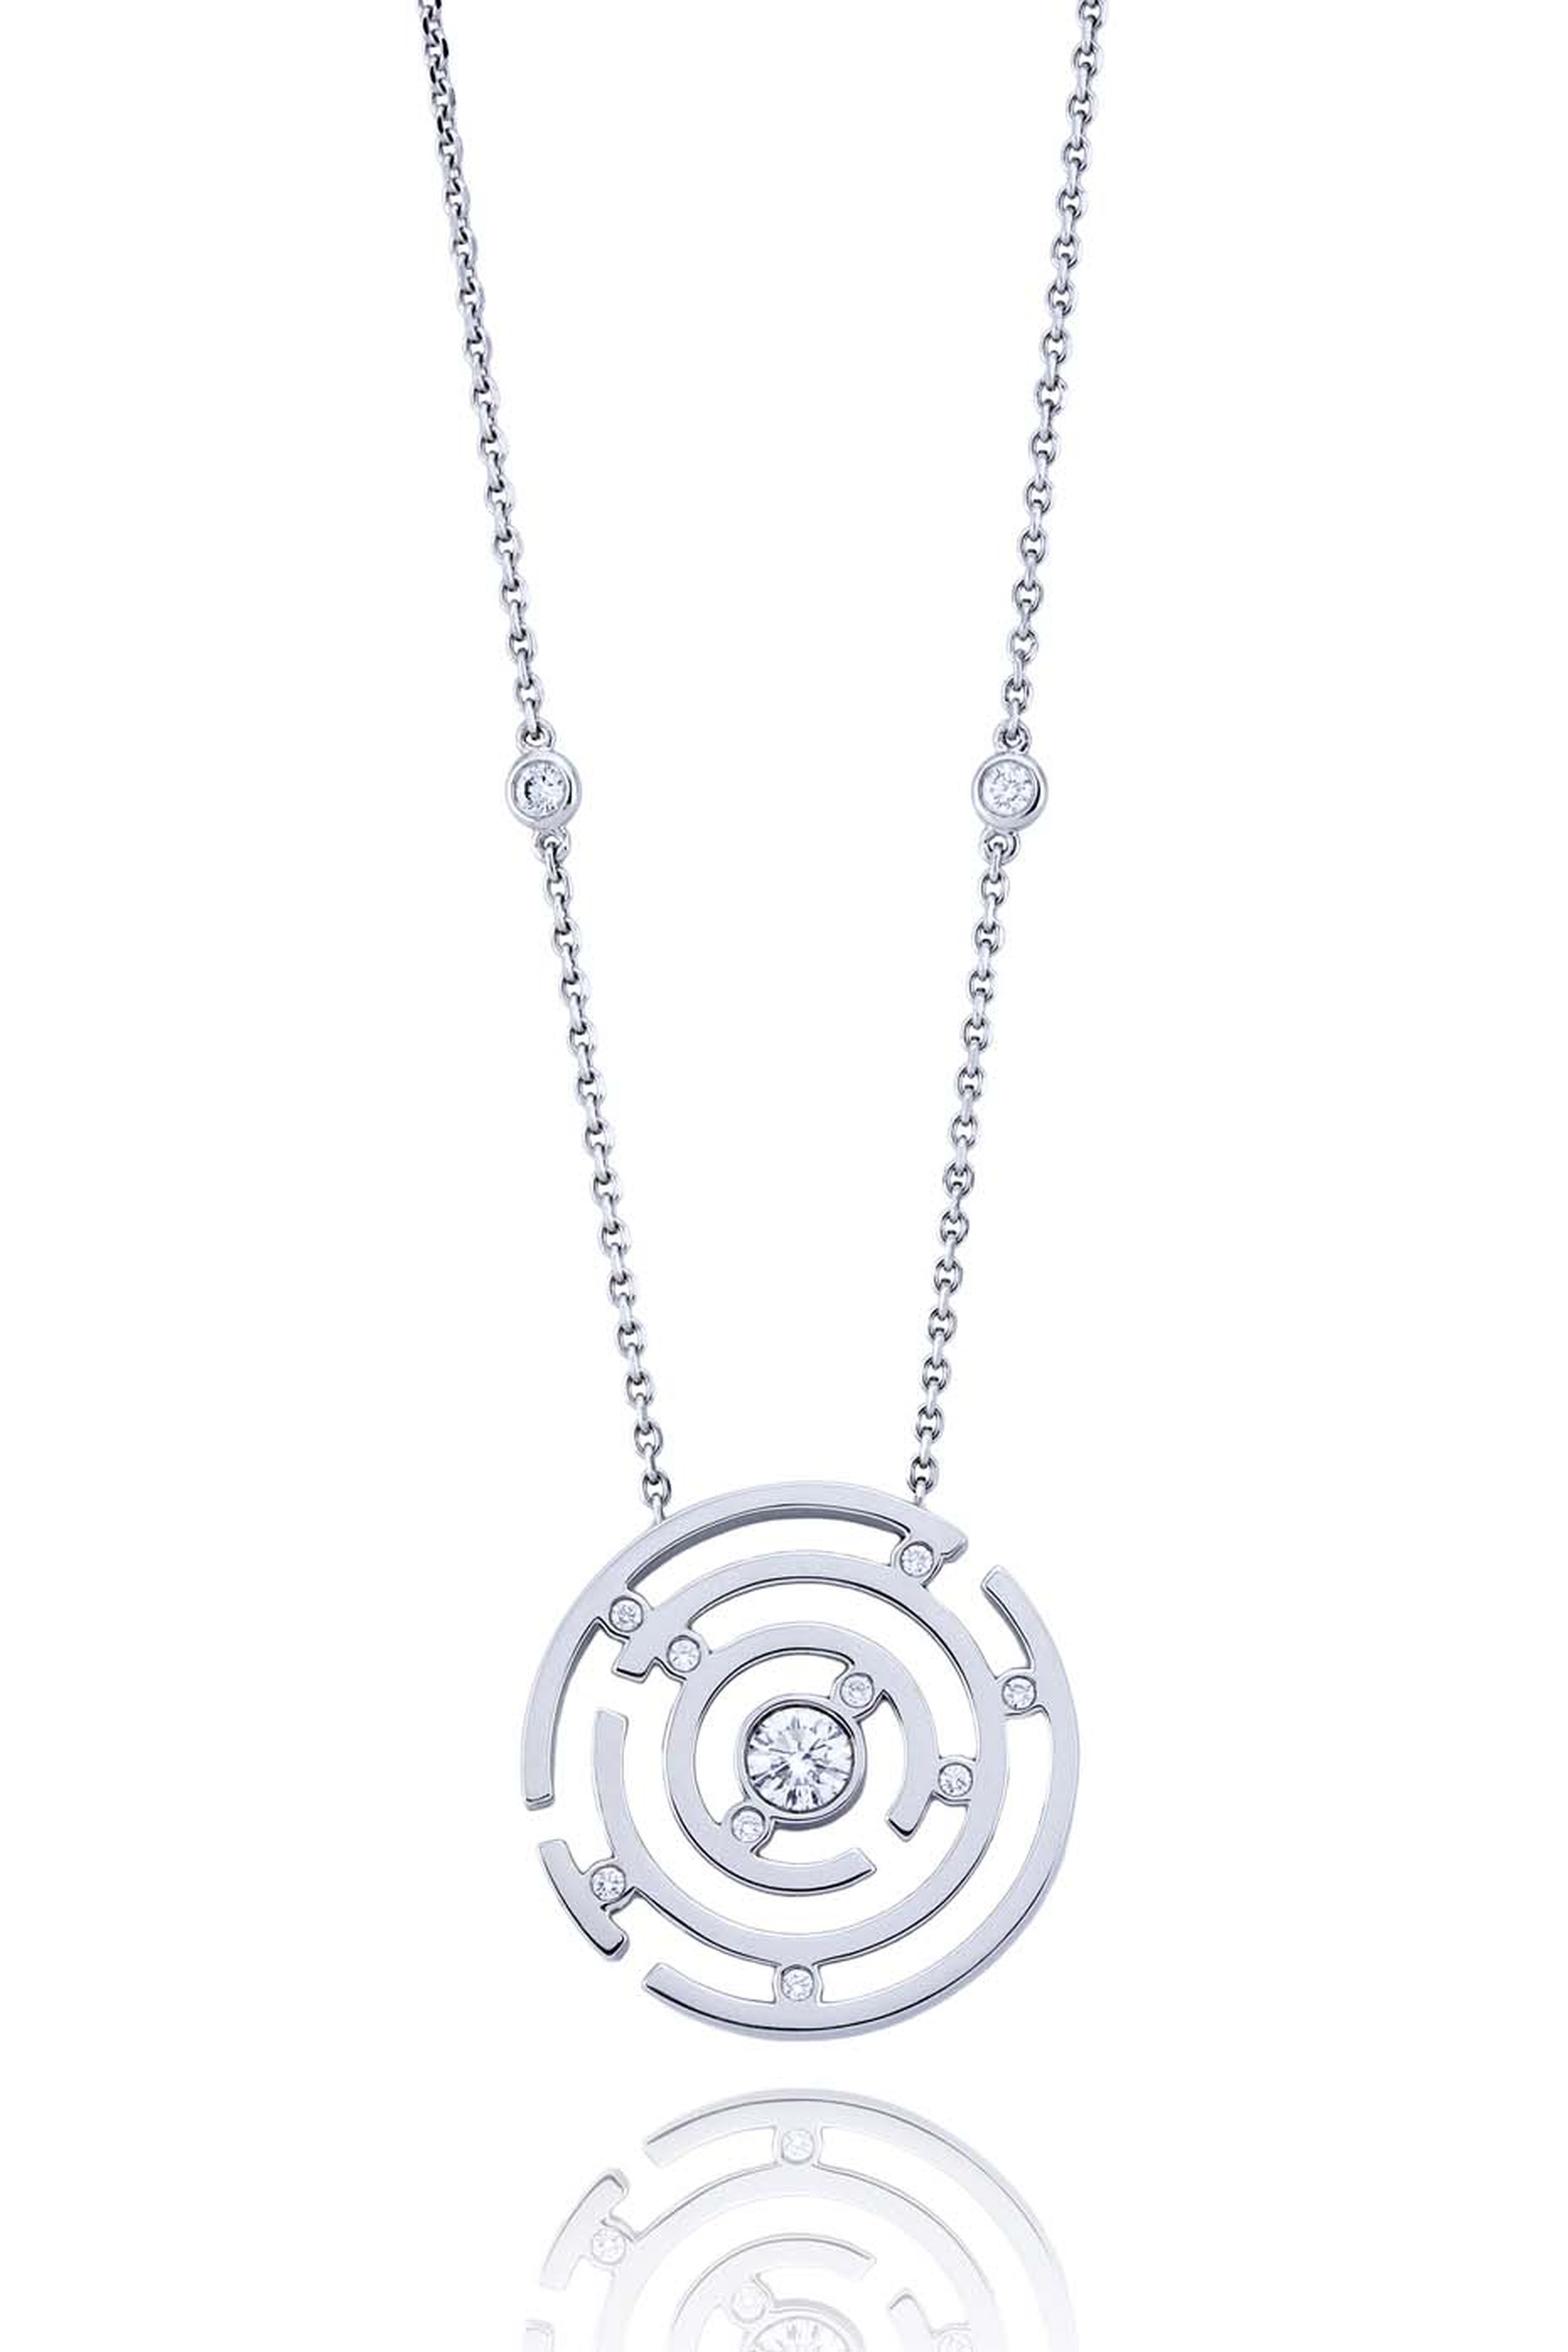 Boodles Maze collection provides a bird's-eye view of the maze such as with the Maze diamond pendant in white gold.